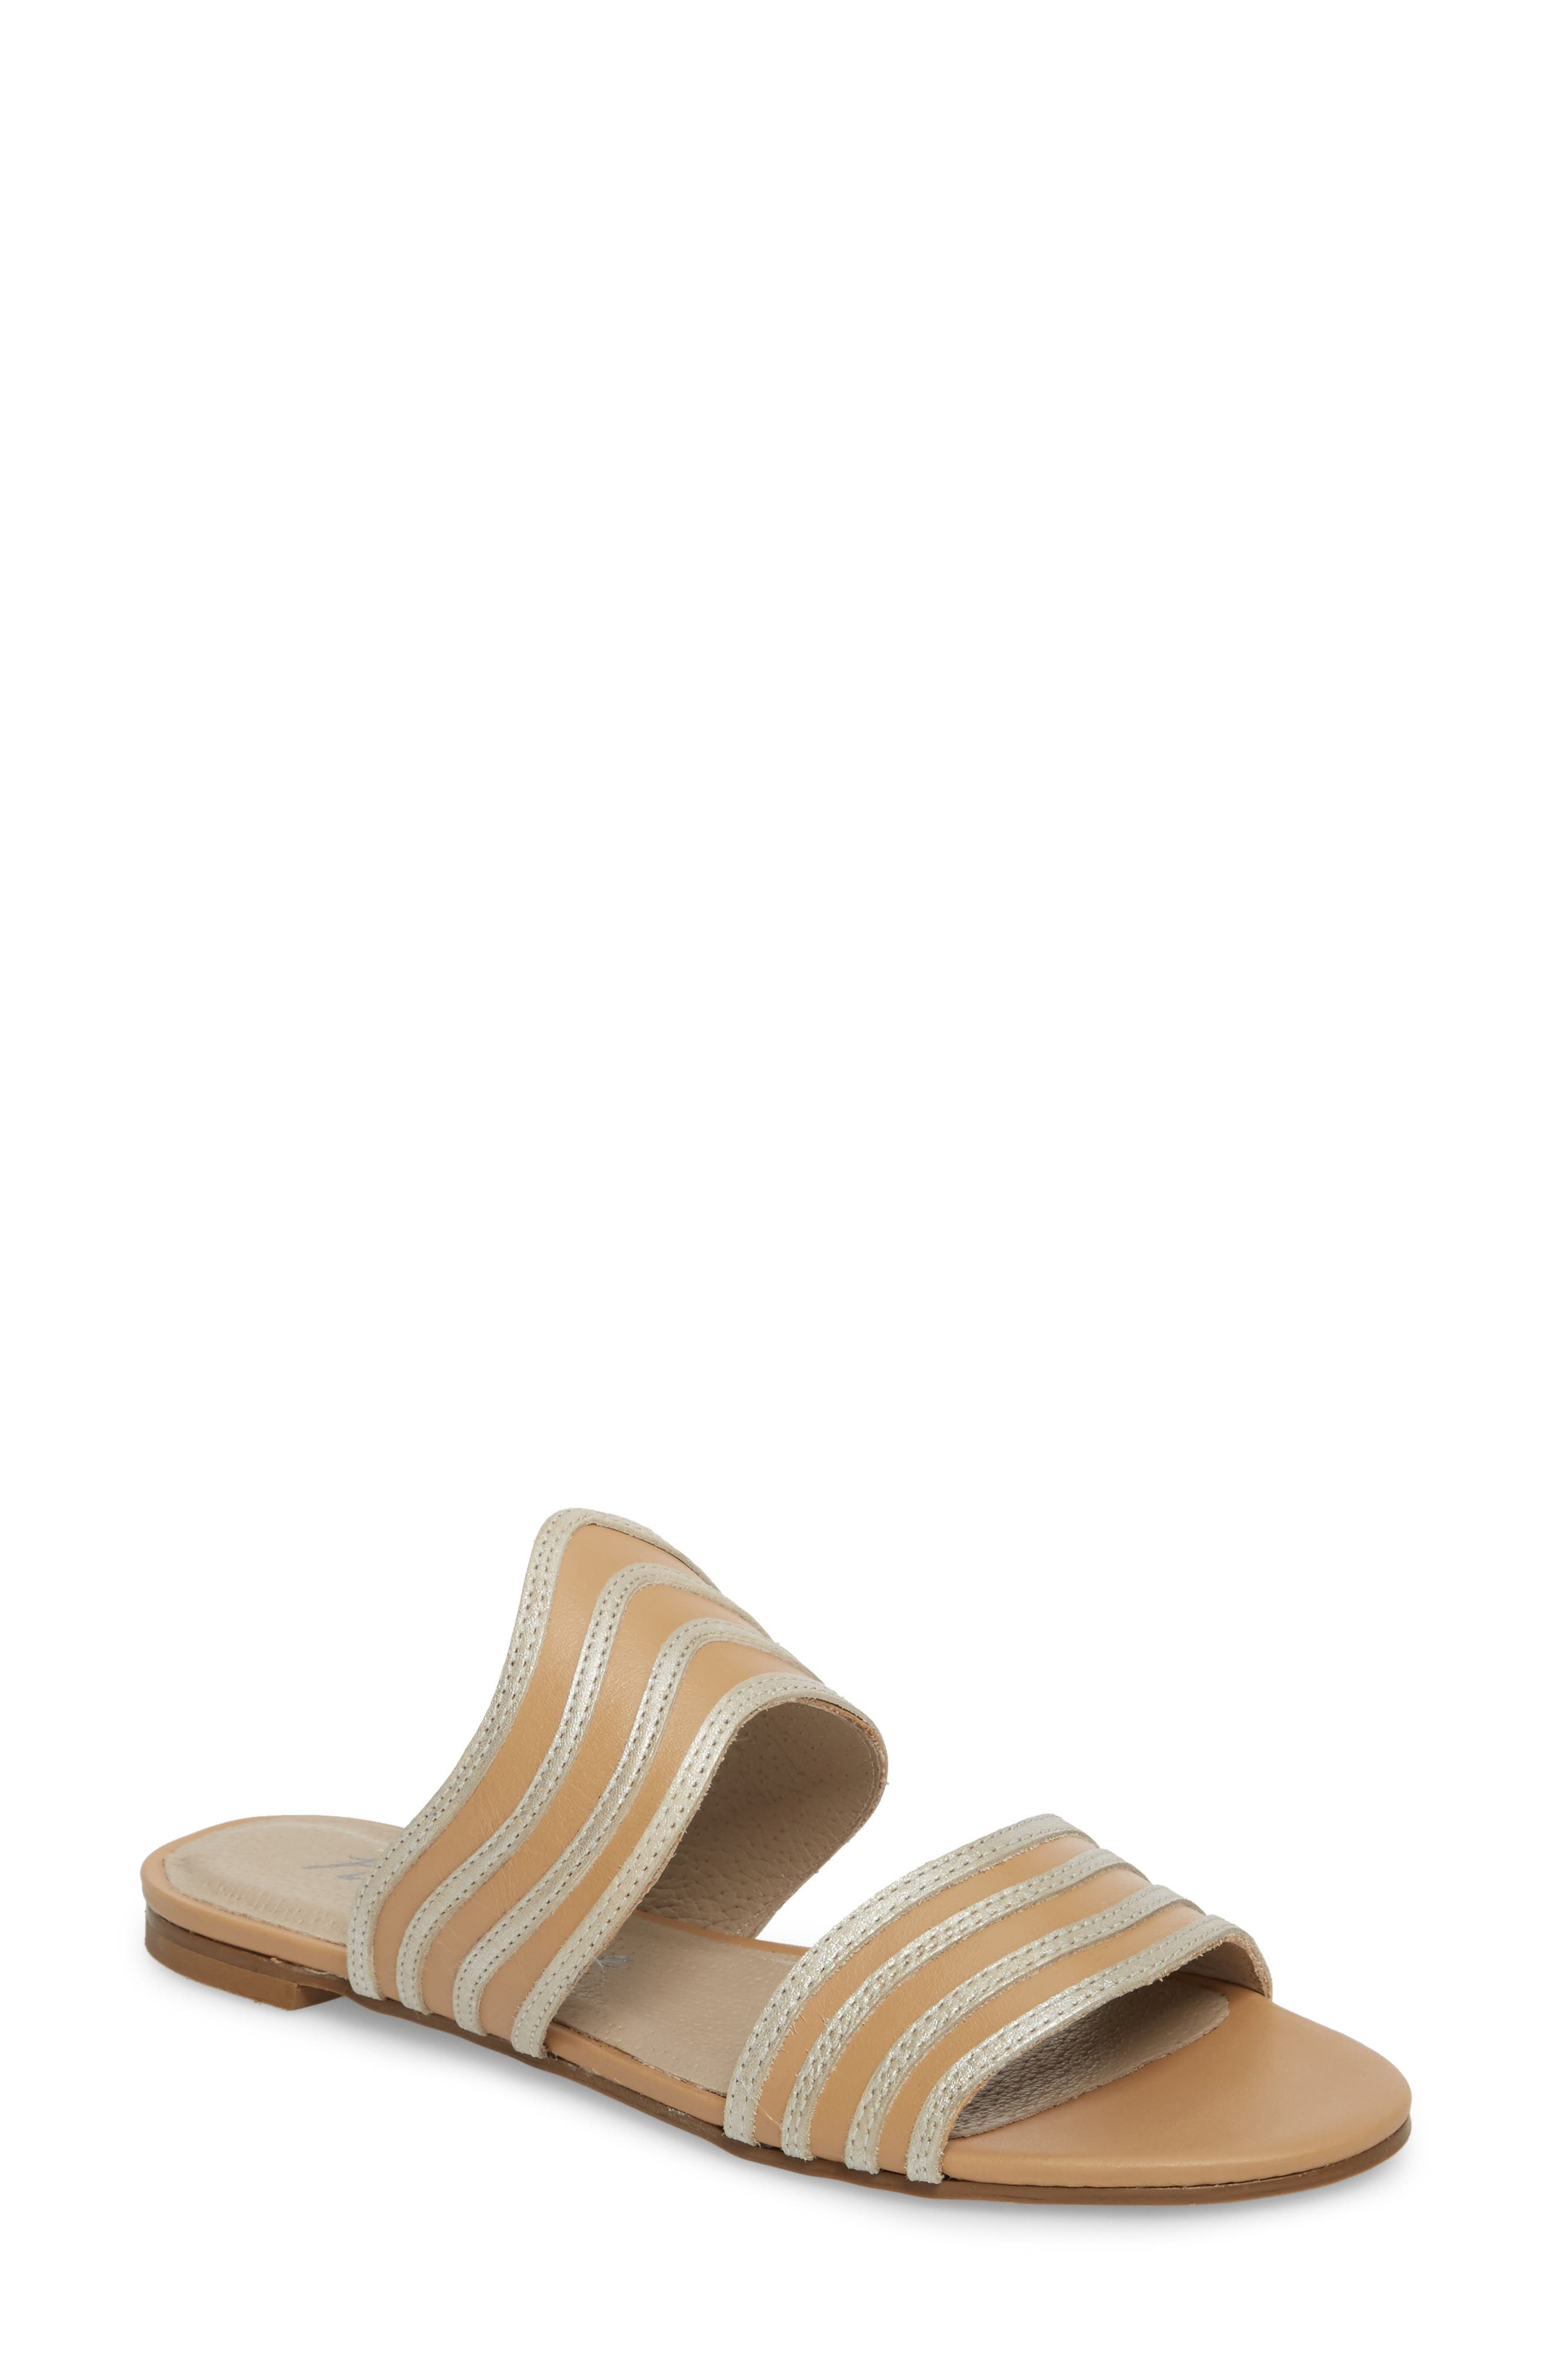 Russo Slide Sandal,                             Main thumbnail 1, color,                             Natural/ Silver Leather